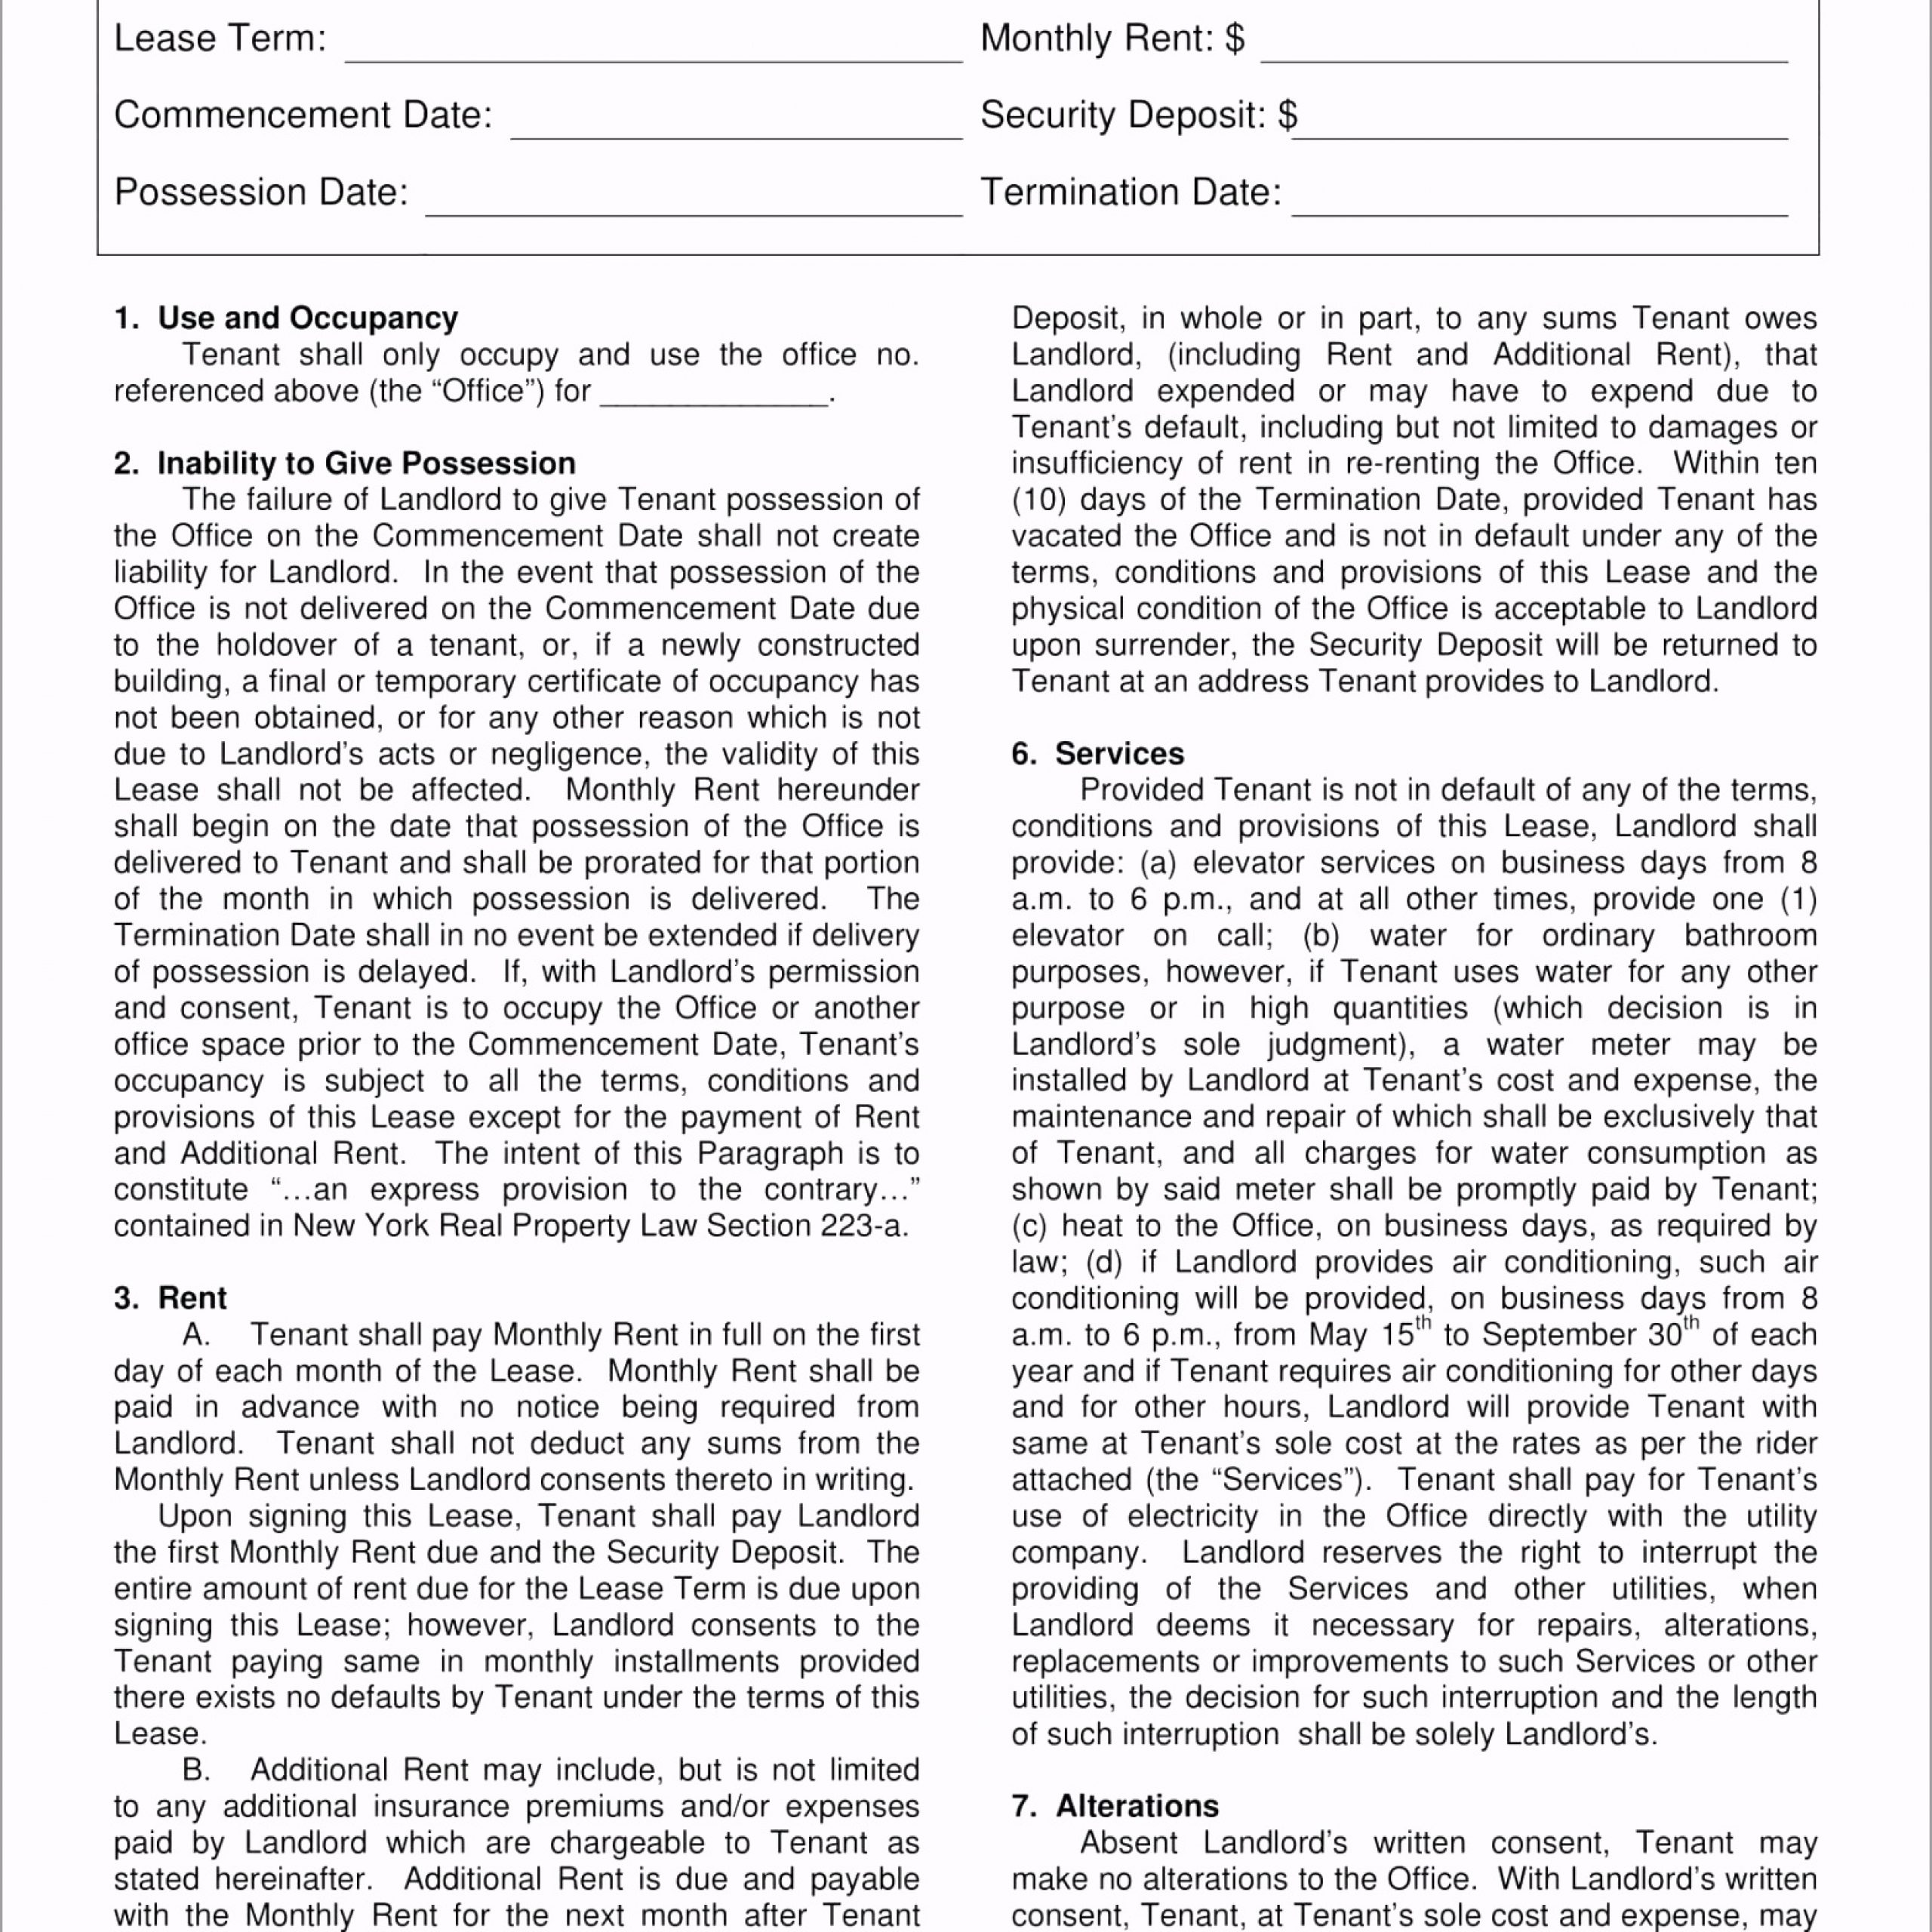 free 5 office lease agreement contract forms in landlord tenant template ontario form atpry